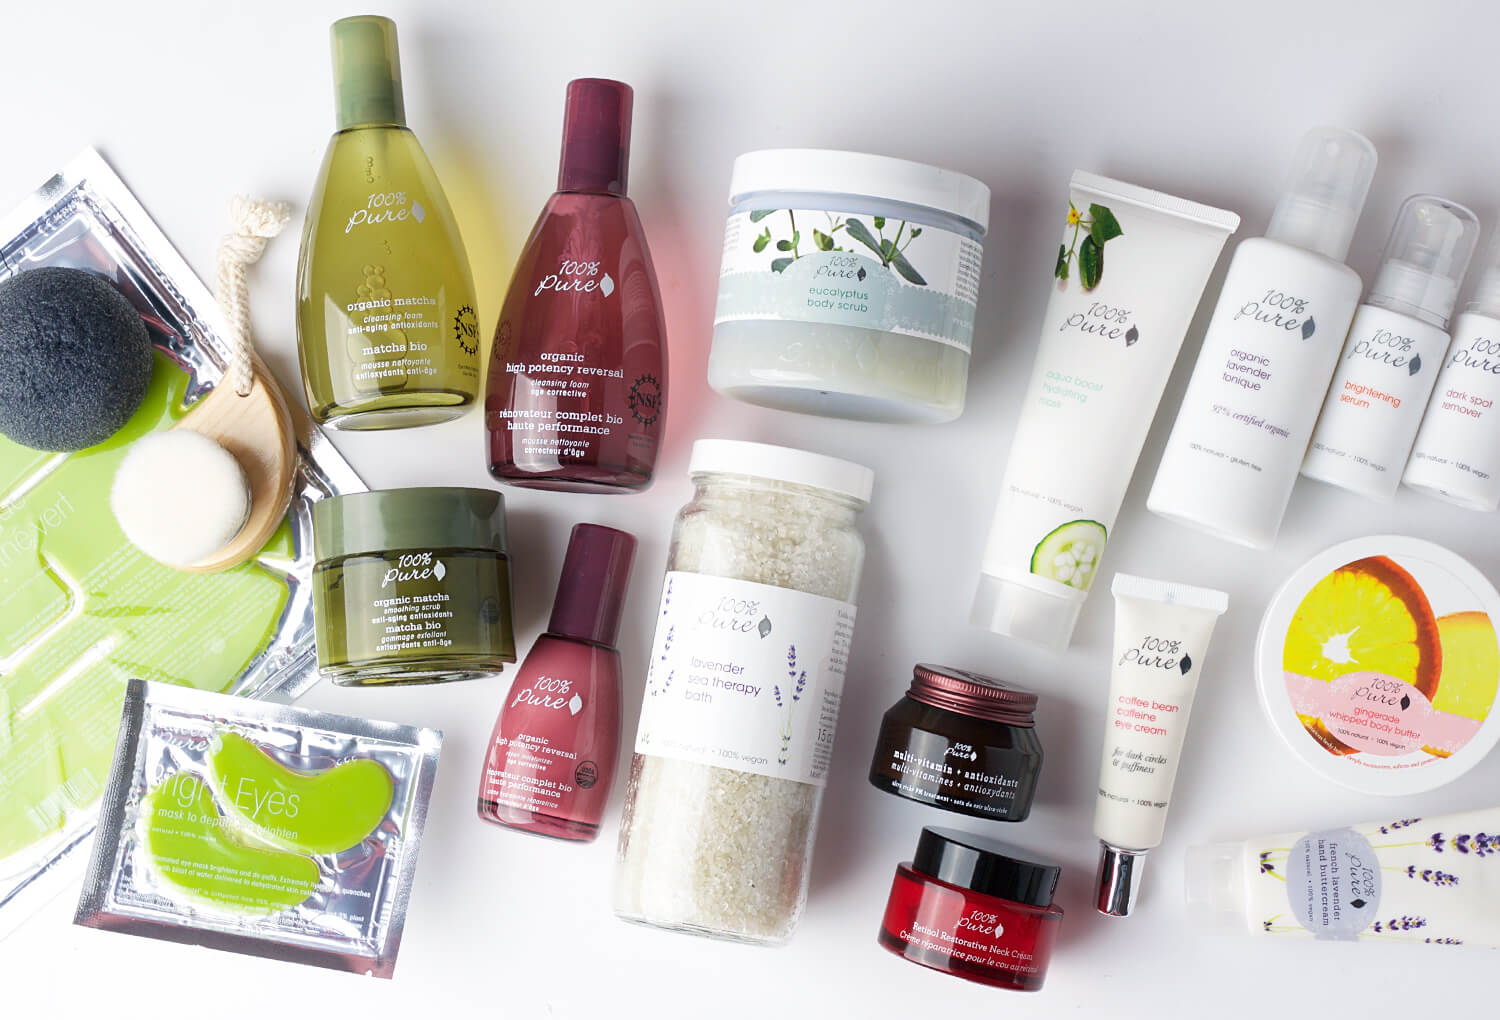 Skin Care products from Katies' routine